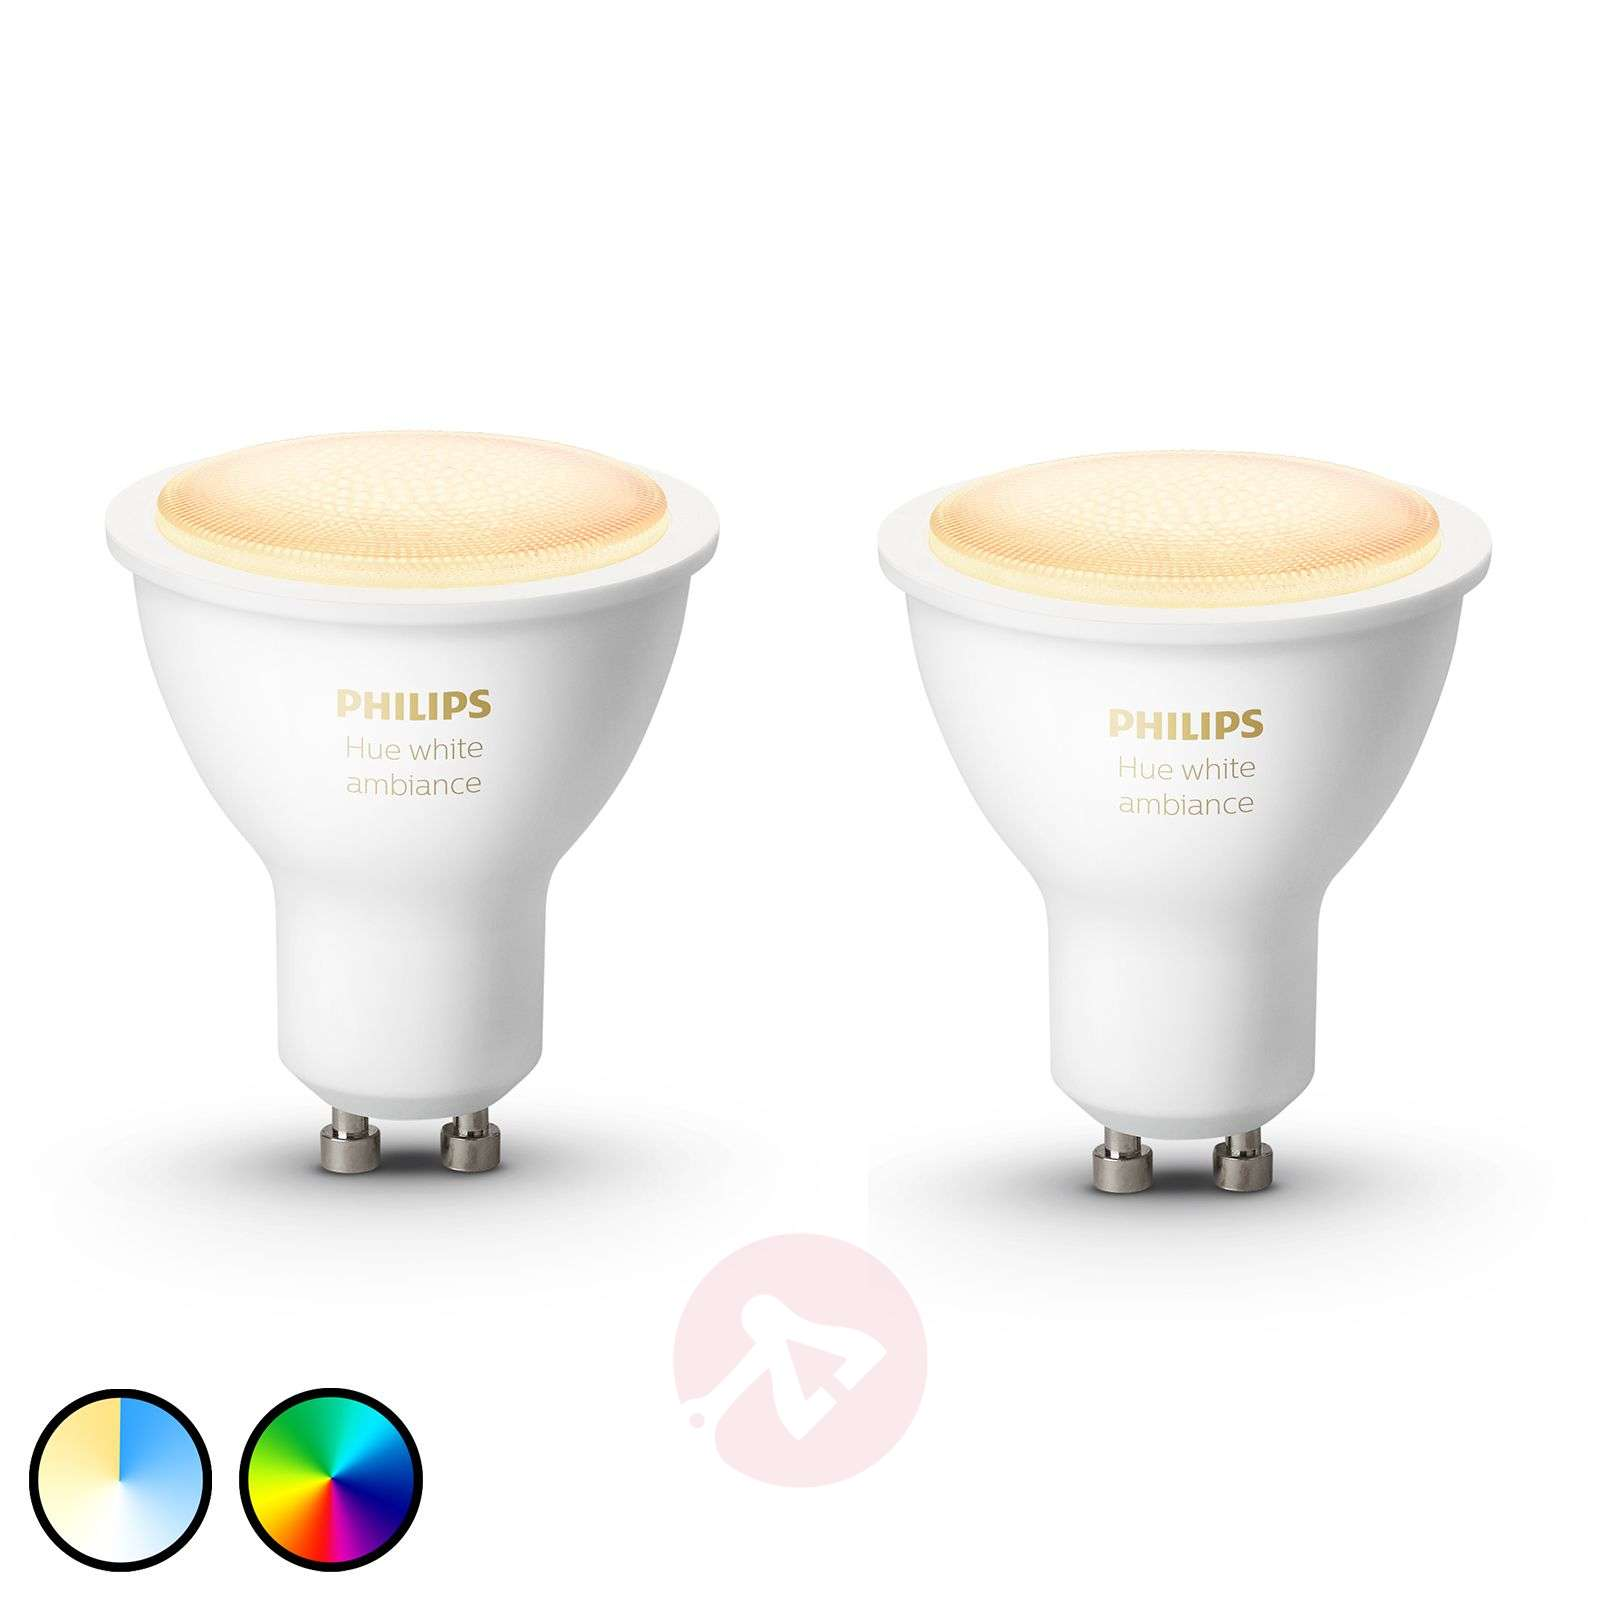 Philips Hue White Ambiance 5 W GU10 LED, set da 2-7534132-01